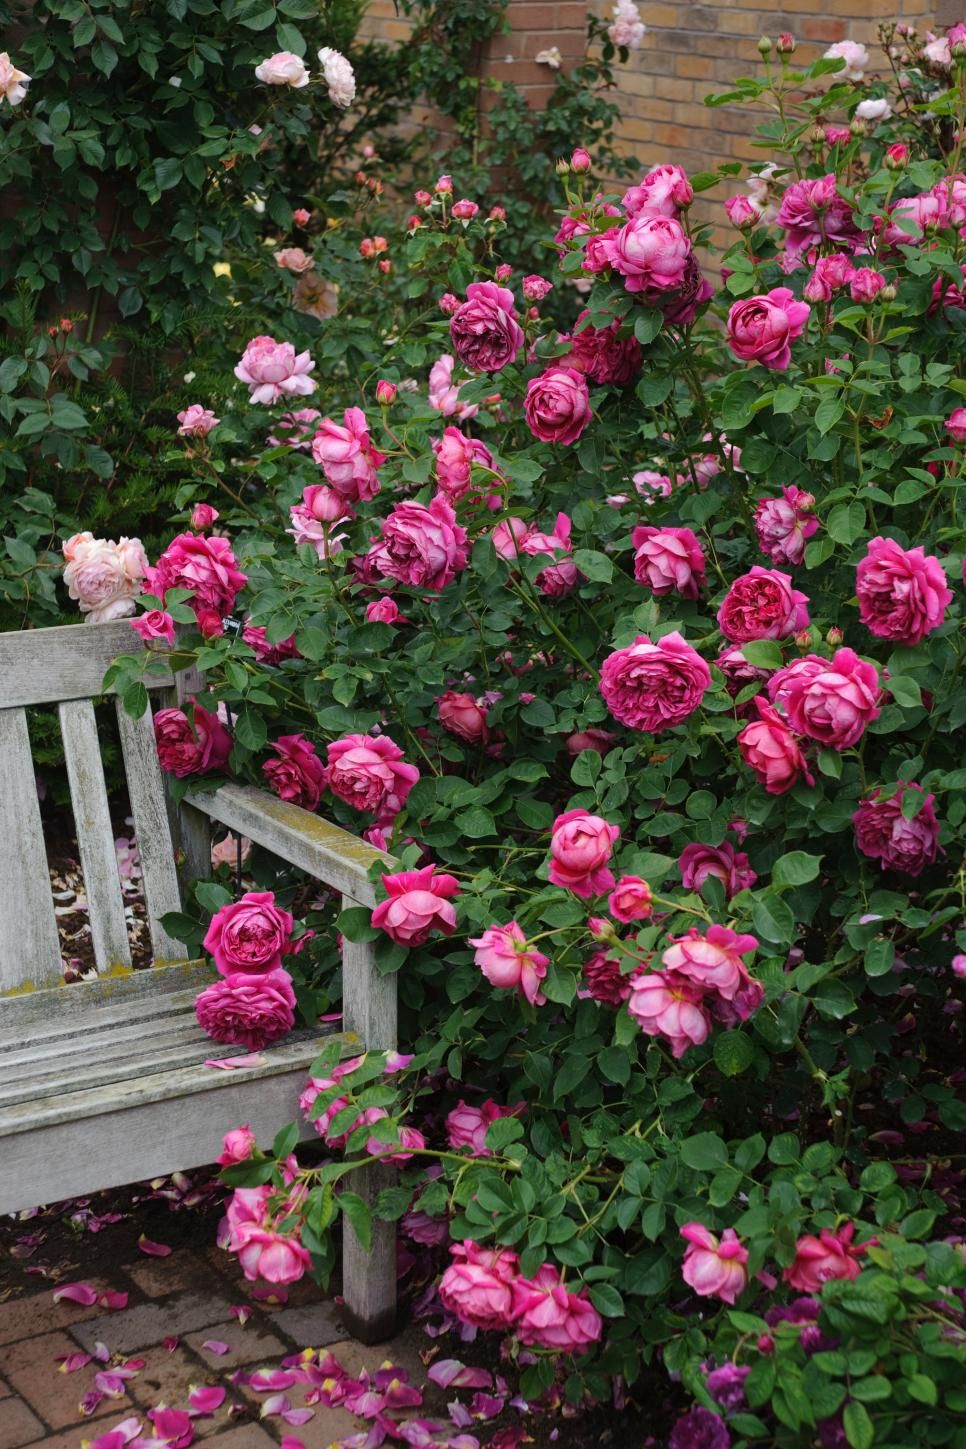 The most popular english roses in america roses pinterest british rose breeder david austin creates some of the most beautiful flowers in the world find out which roses are most in demand in american gardens izmirmasajfo